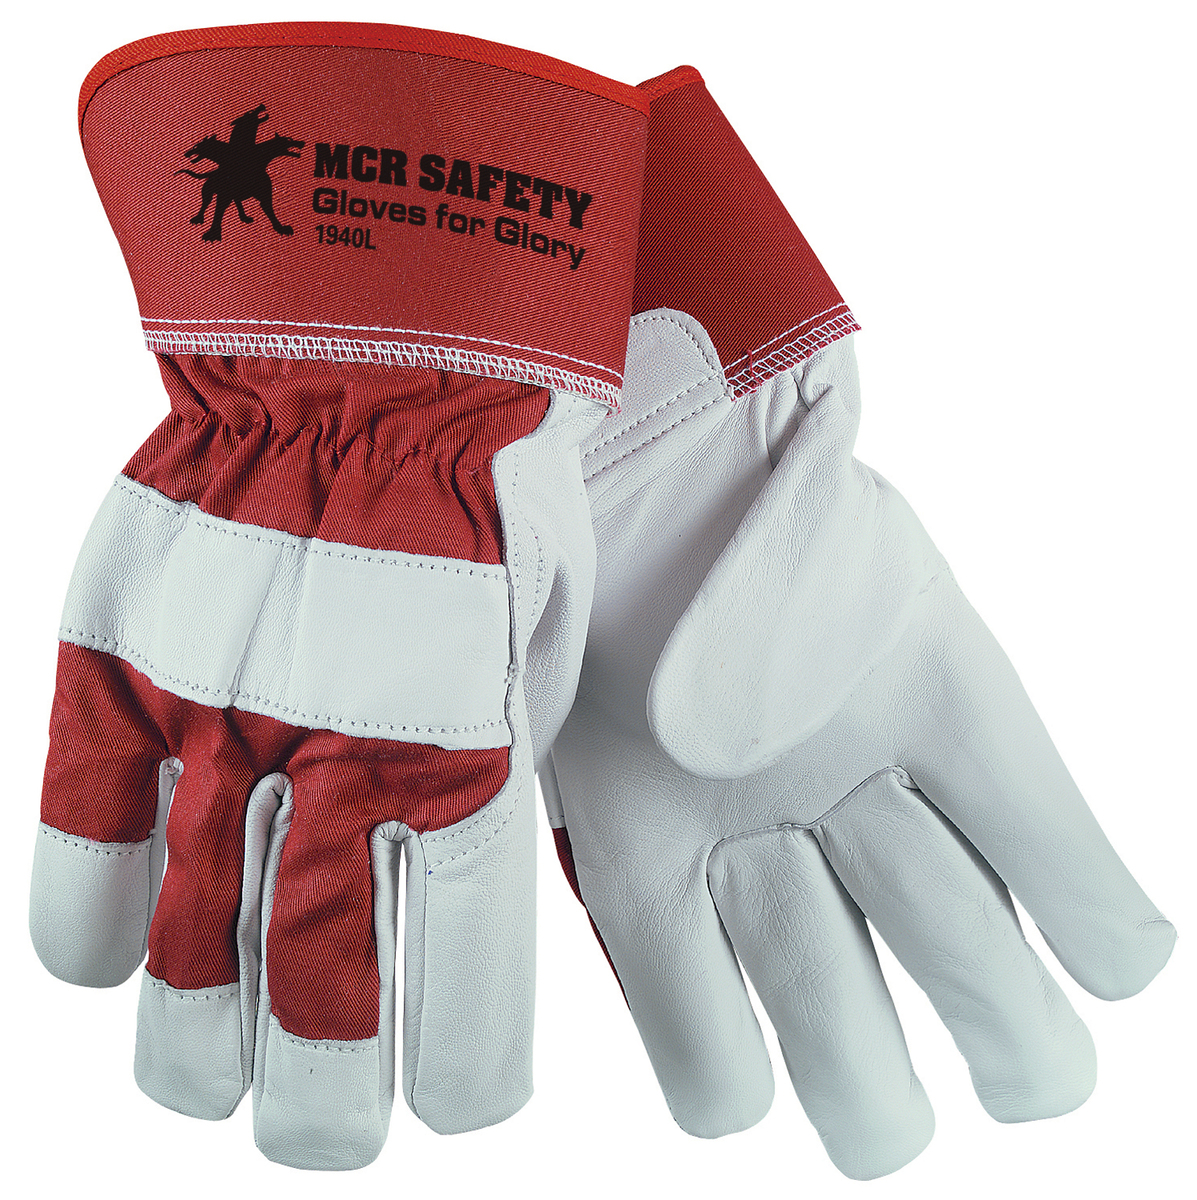 1940 MCR Safety Gloves For Glory Grain Goatskin Leather Palm 2.5 Inch Safety Cuff-MCR Safety